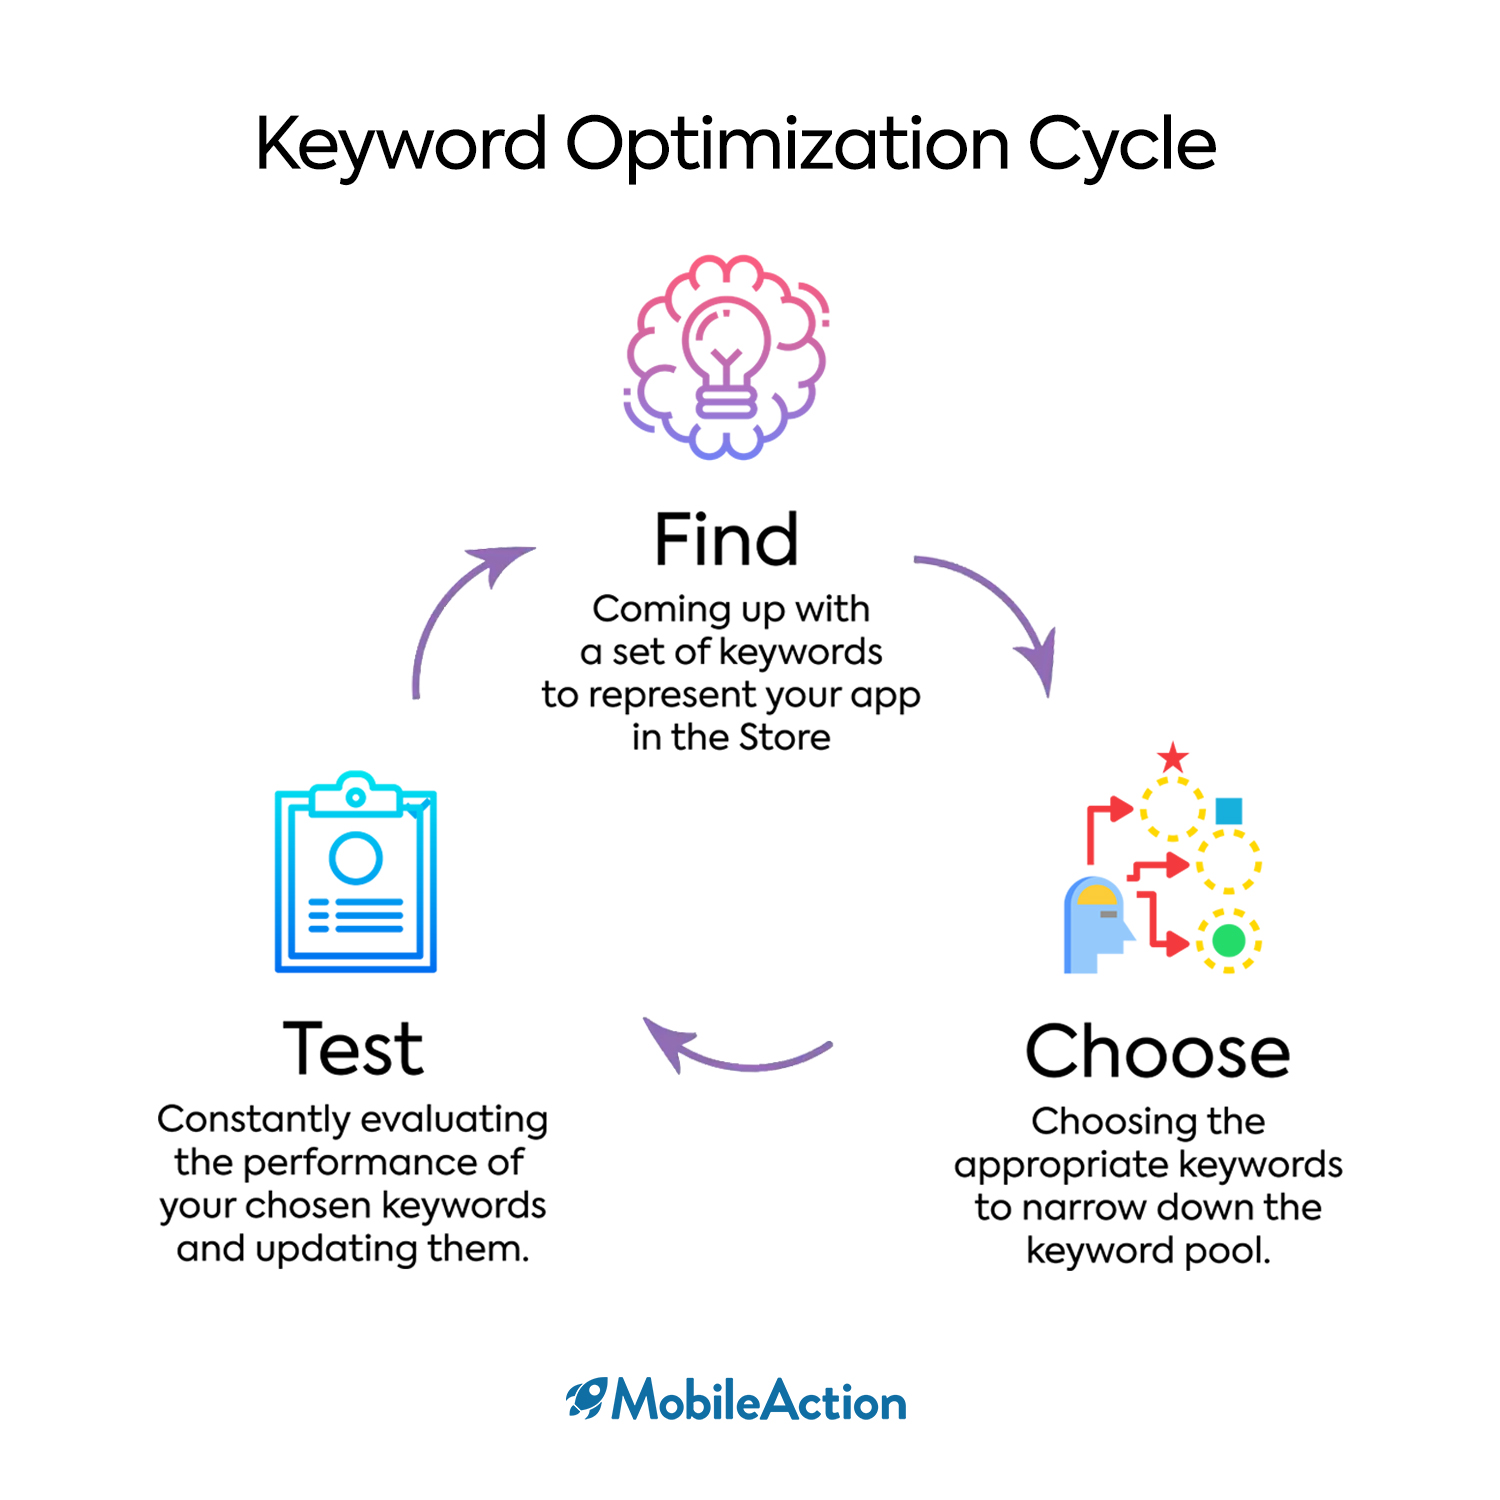 Keyword Optimization helps you evaluate the best keywords from a bunch of keywords to increase your ASO efforts upon.